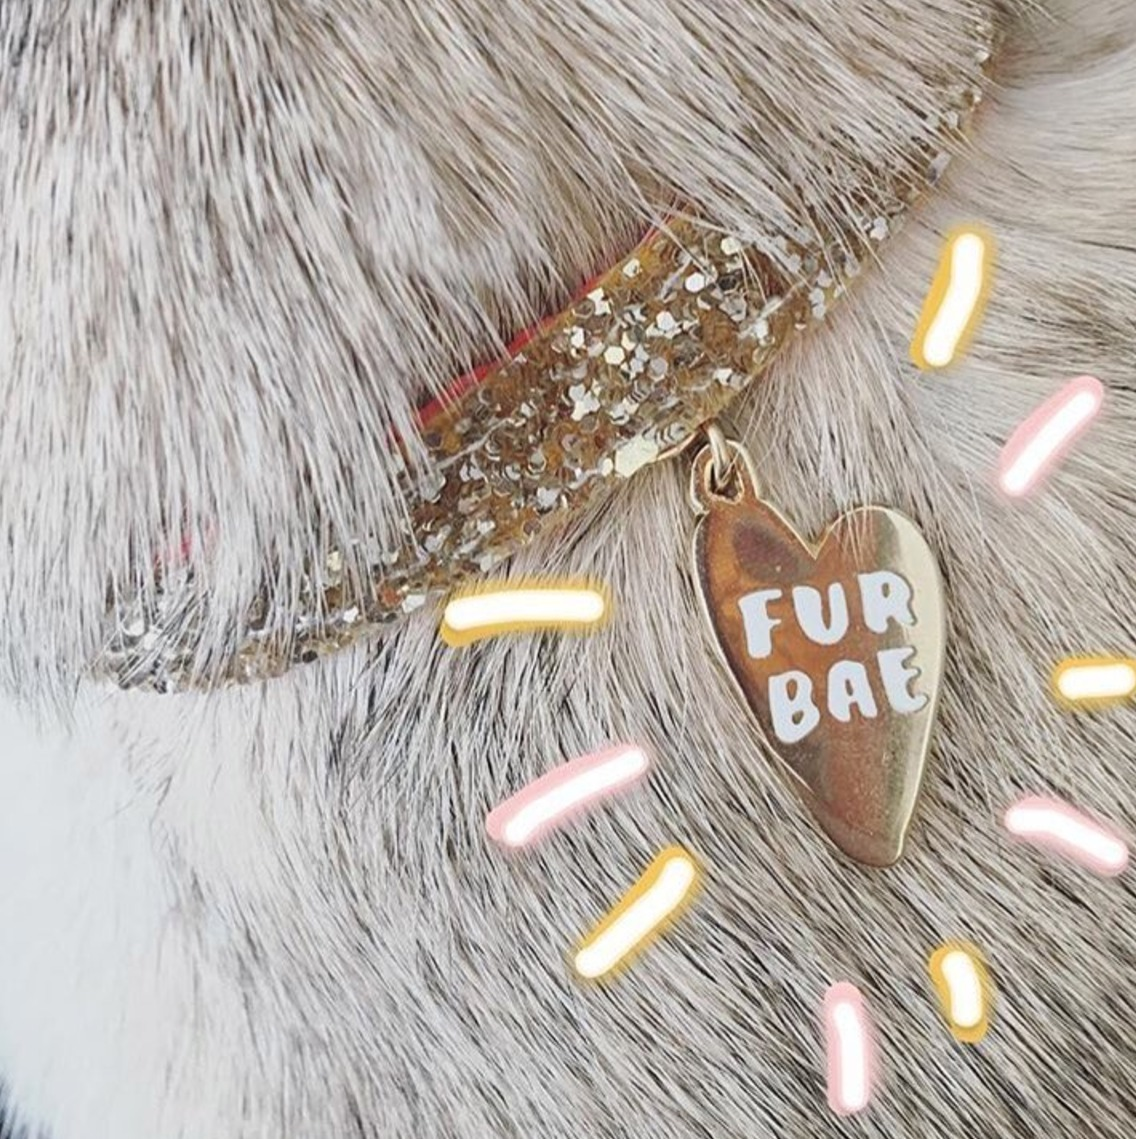 ☆☆☆ helloharriet ☆☆☆ 'Fur Bae' Collar Tag